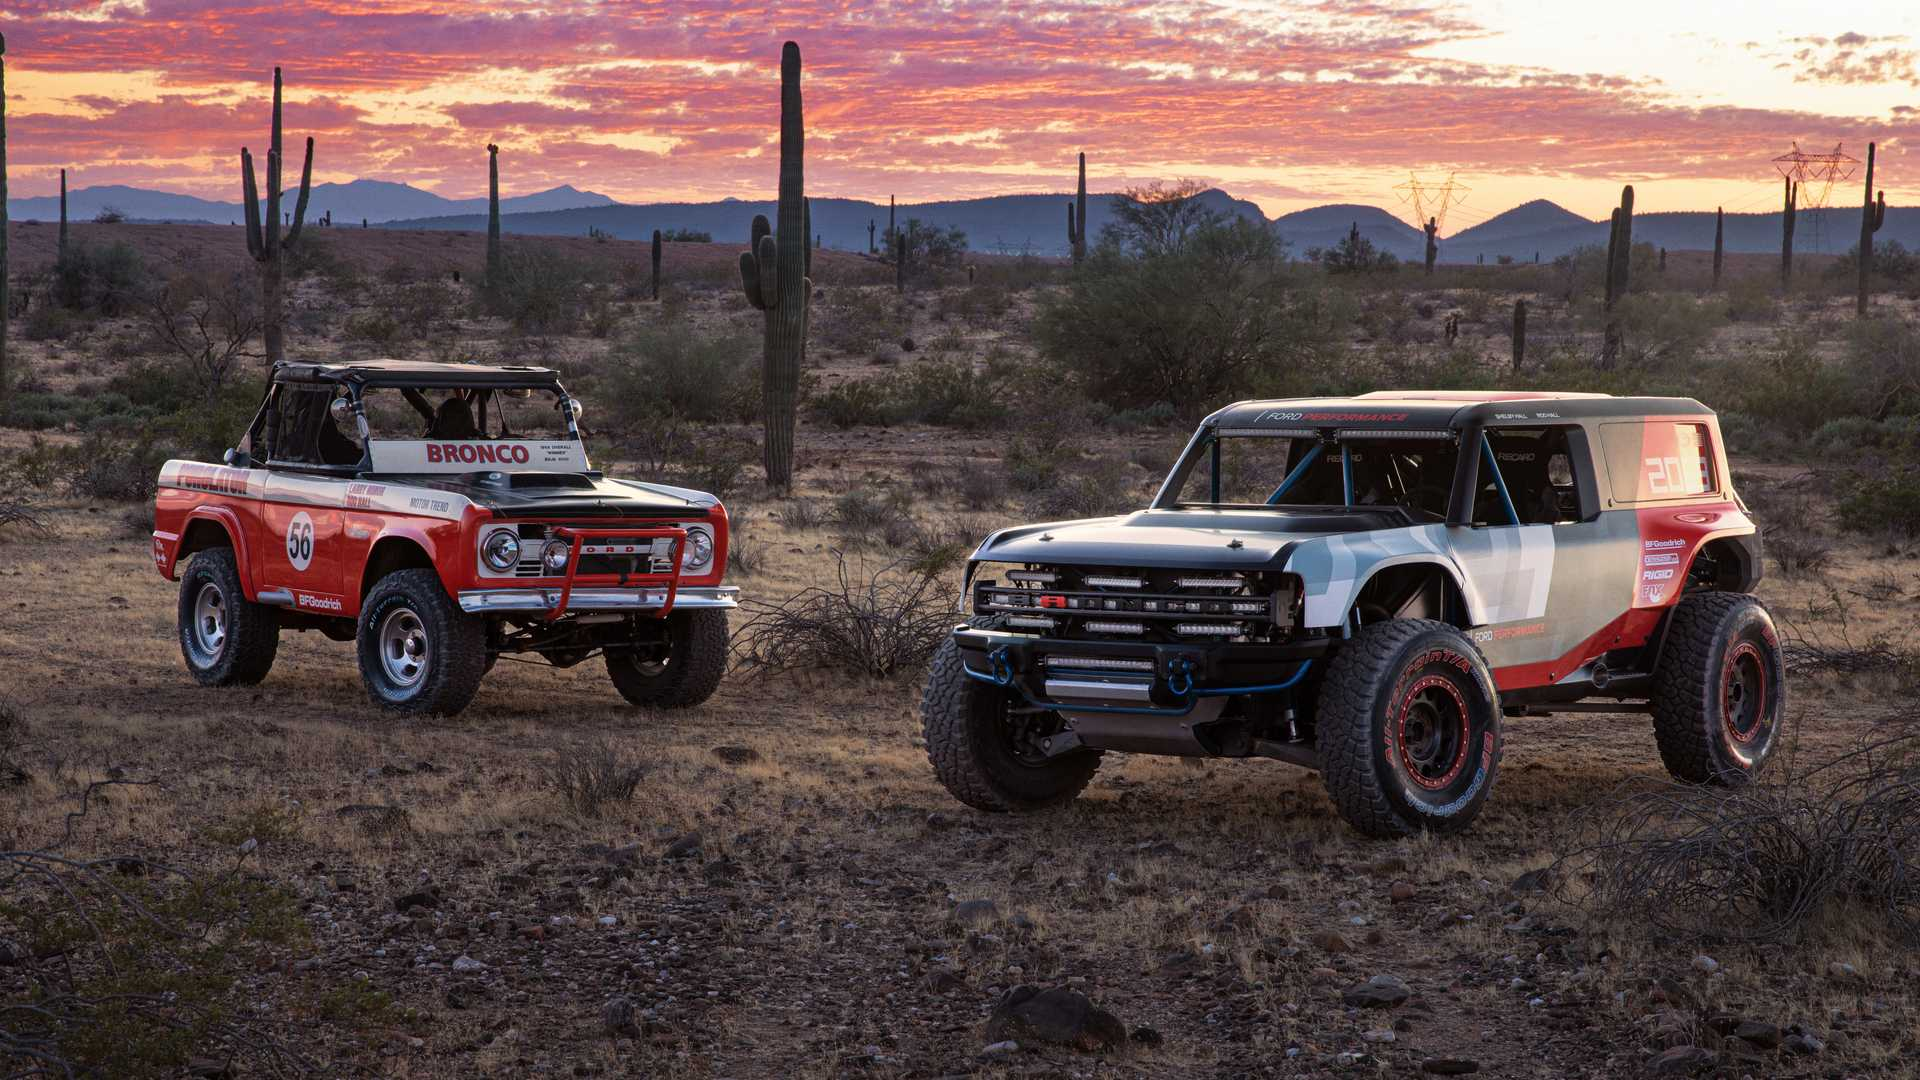 Ford continues working on its upcoming new SUV, the Bronco. Despite the fact that the car isn't even out yet, the company has built a rally version of it and is already testing it in the desert.